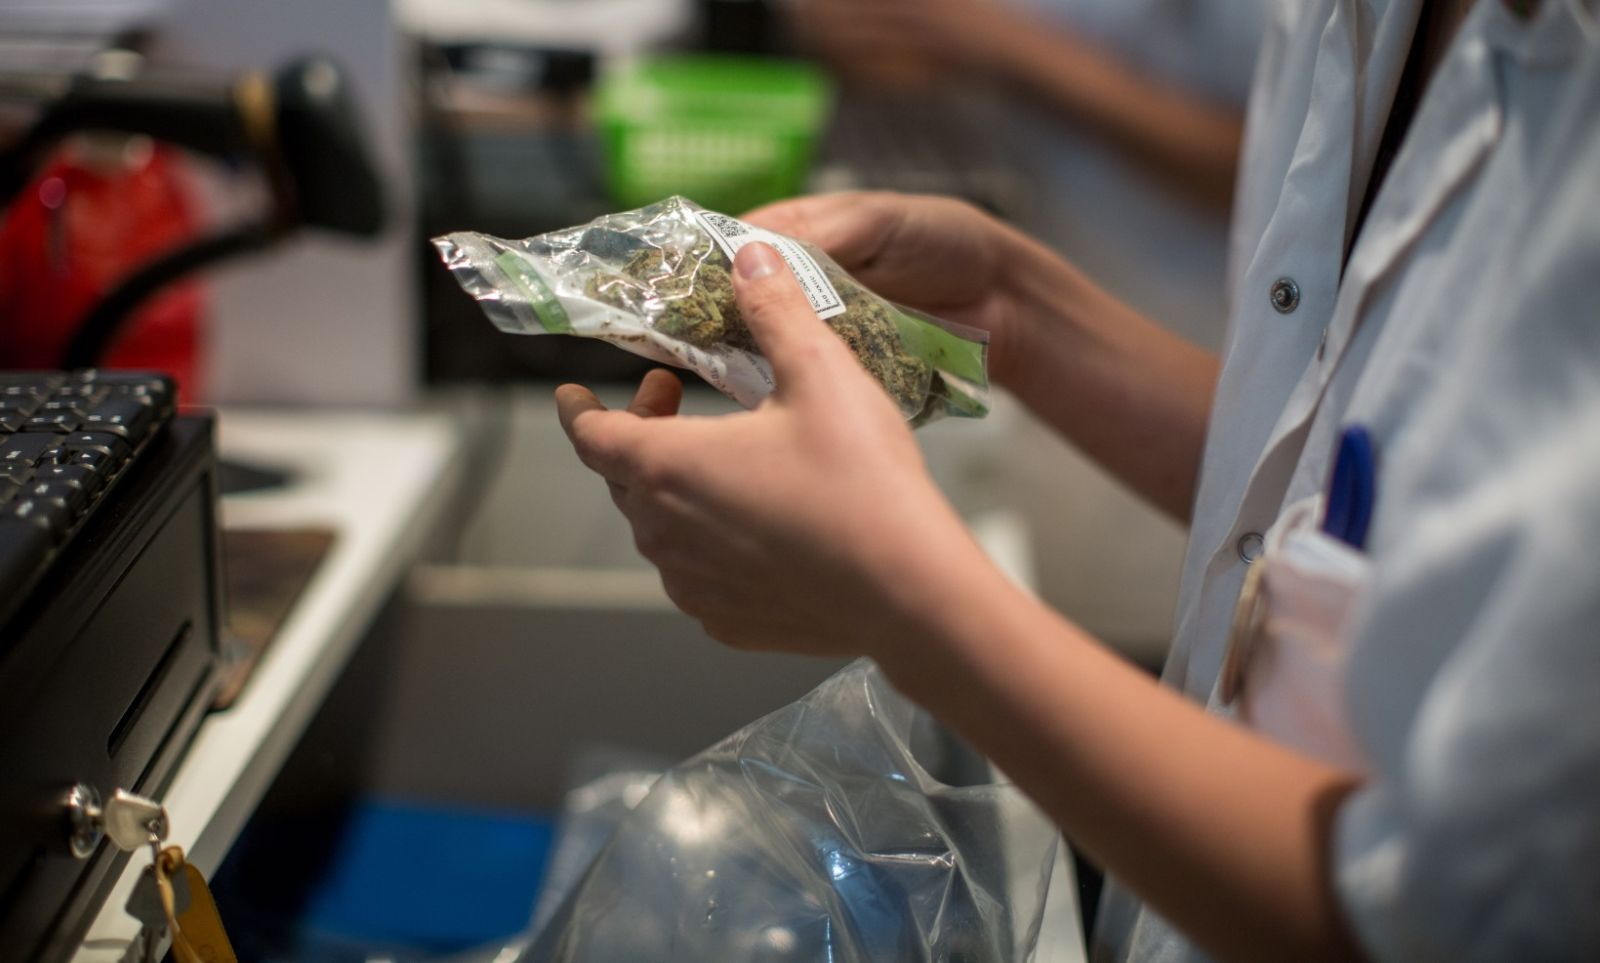 A pharmacist dispensing medical marijuana at the Tikun Olam store in Tel Aviv. Photo by Hadas Parush/FLASH90